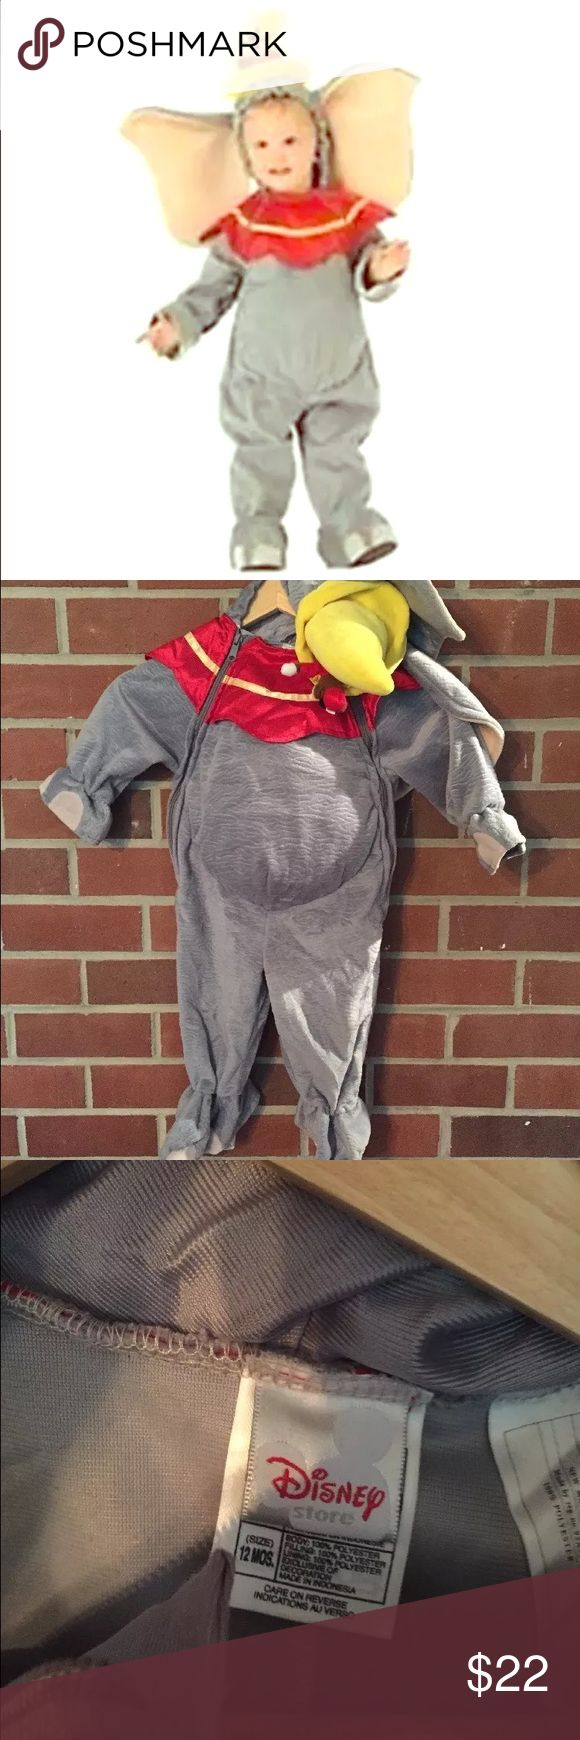 Dumbo Disney store costume 12 month Adorable dumbo costume! Worn once! In perfect condition Disney Costumes Halloween